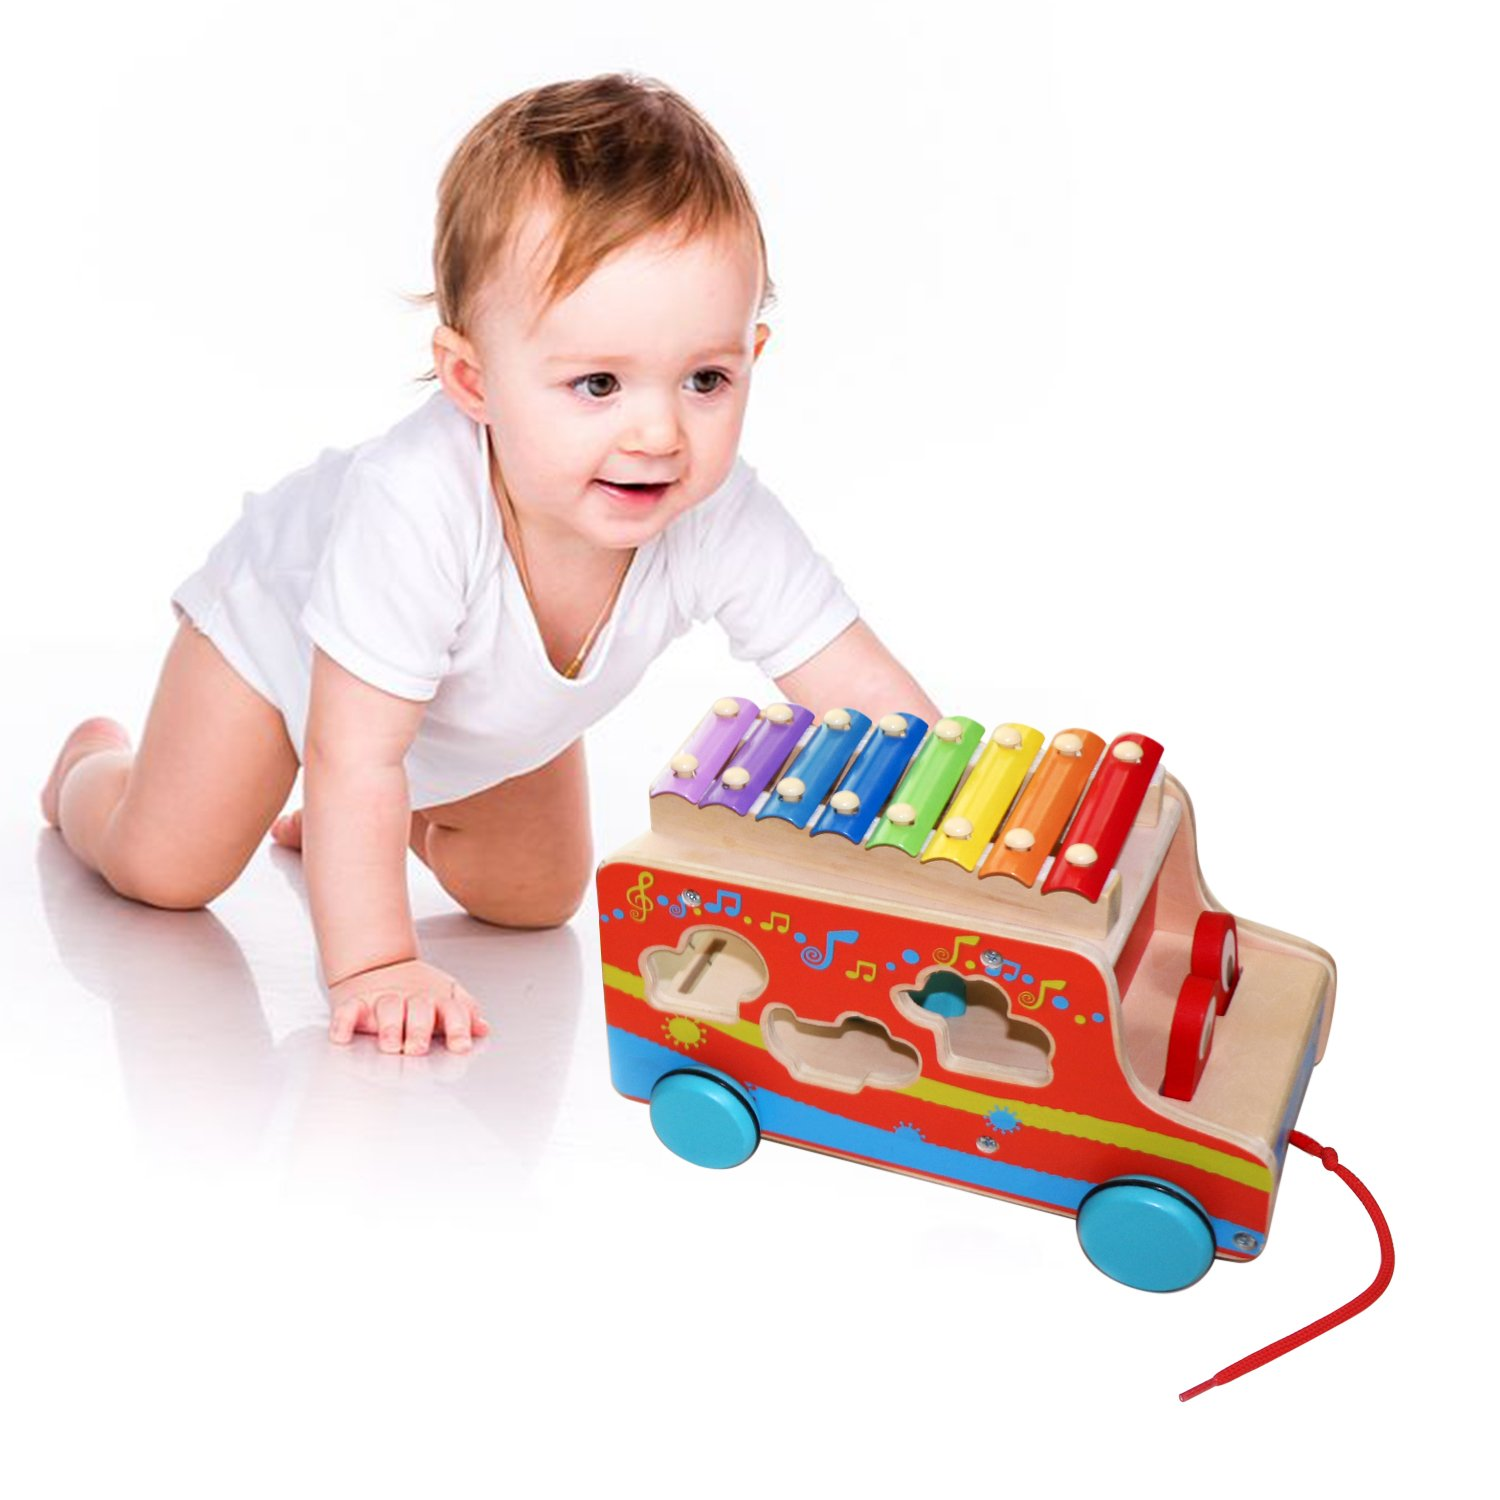 Amazon Miric Pull Toy Xylophone Wooden Shape with Colorful